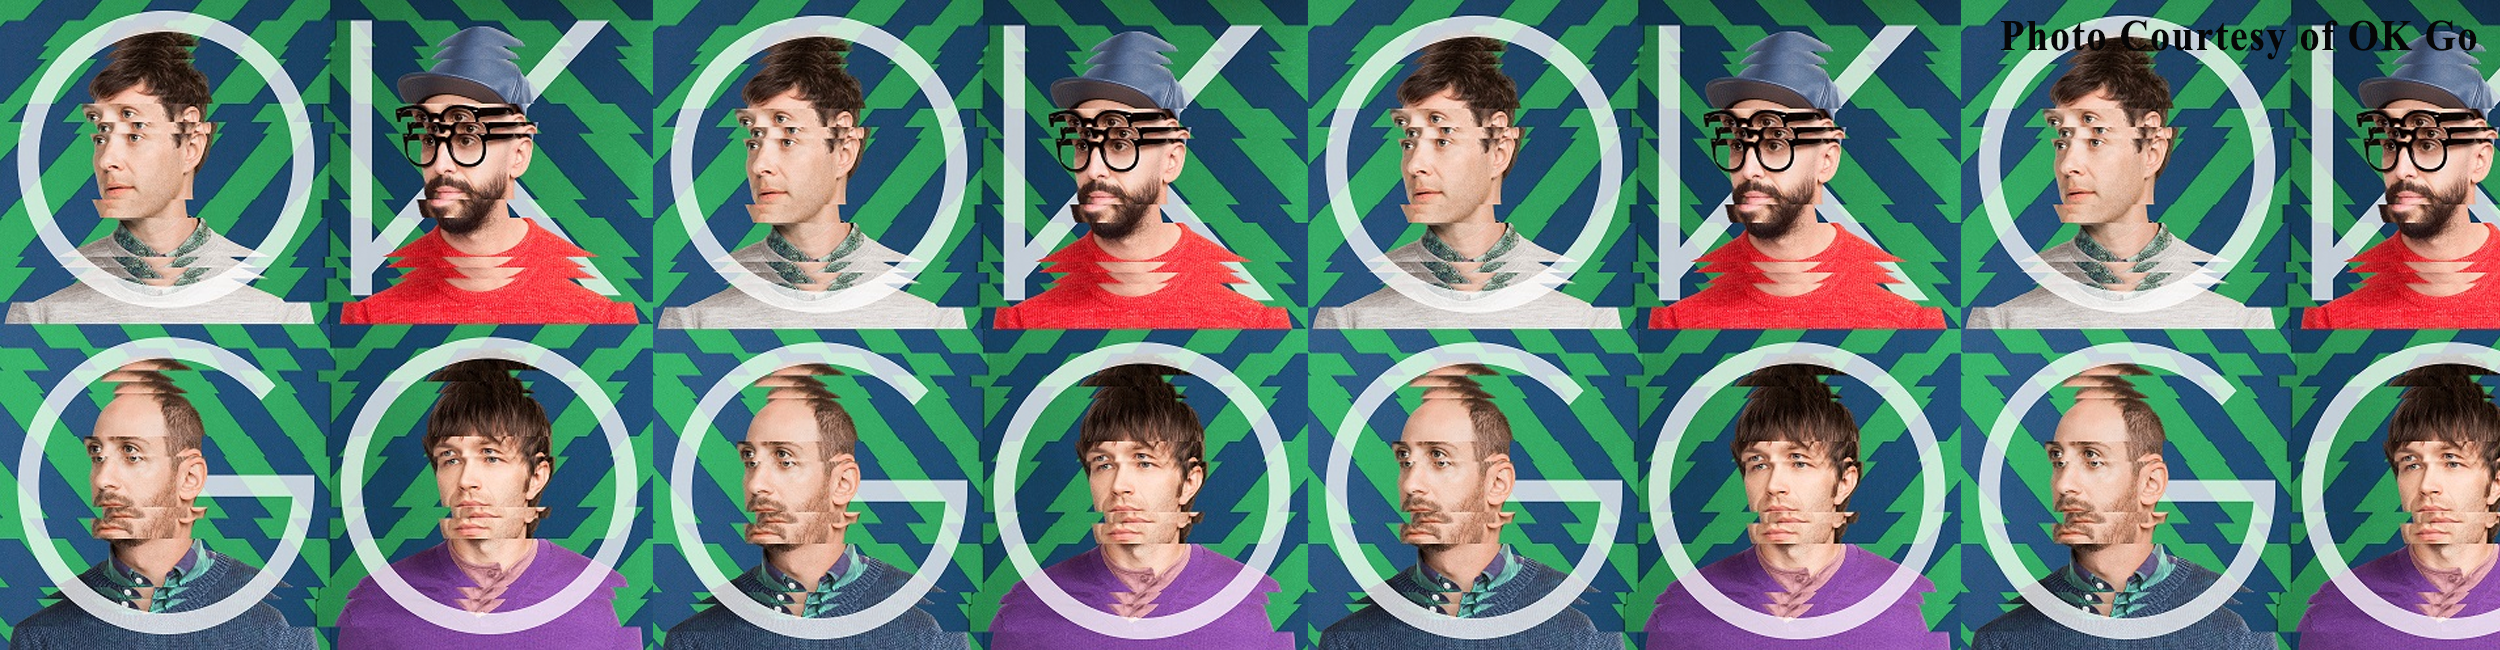 OK Go impresses fans with fourth studio album Hungry Ghosts